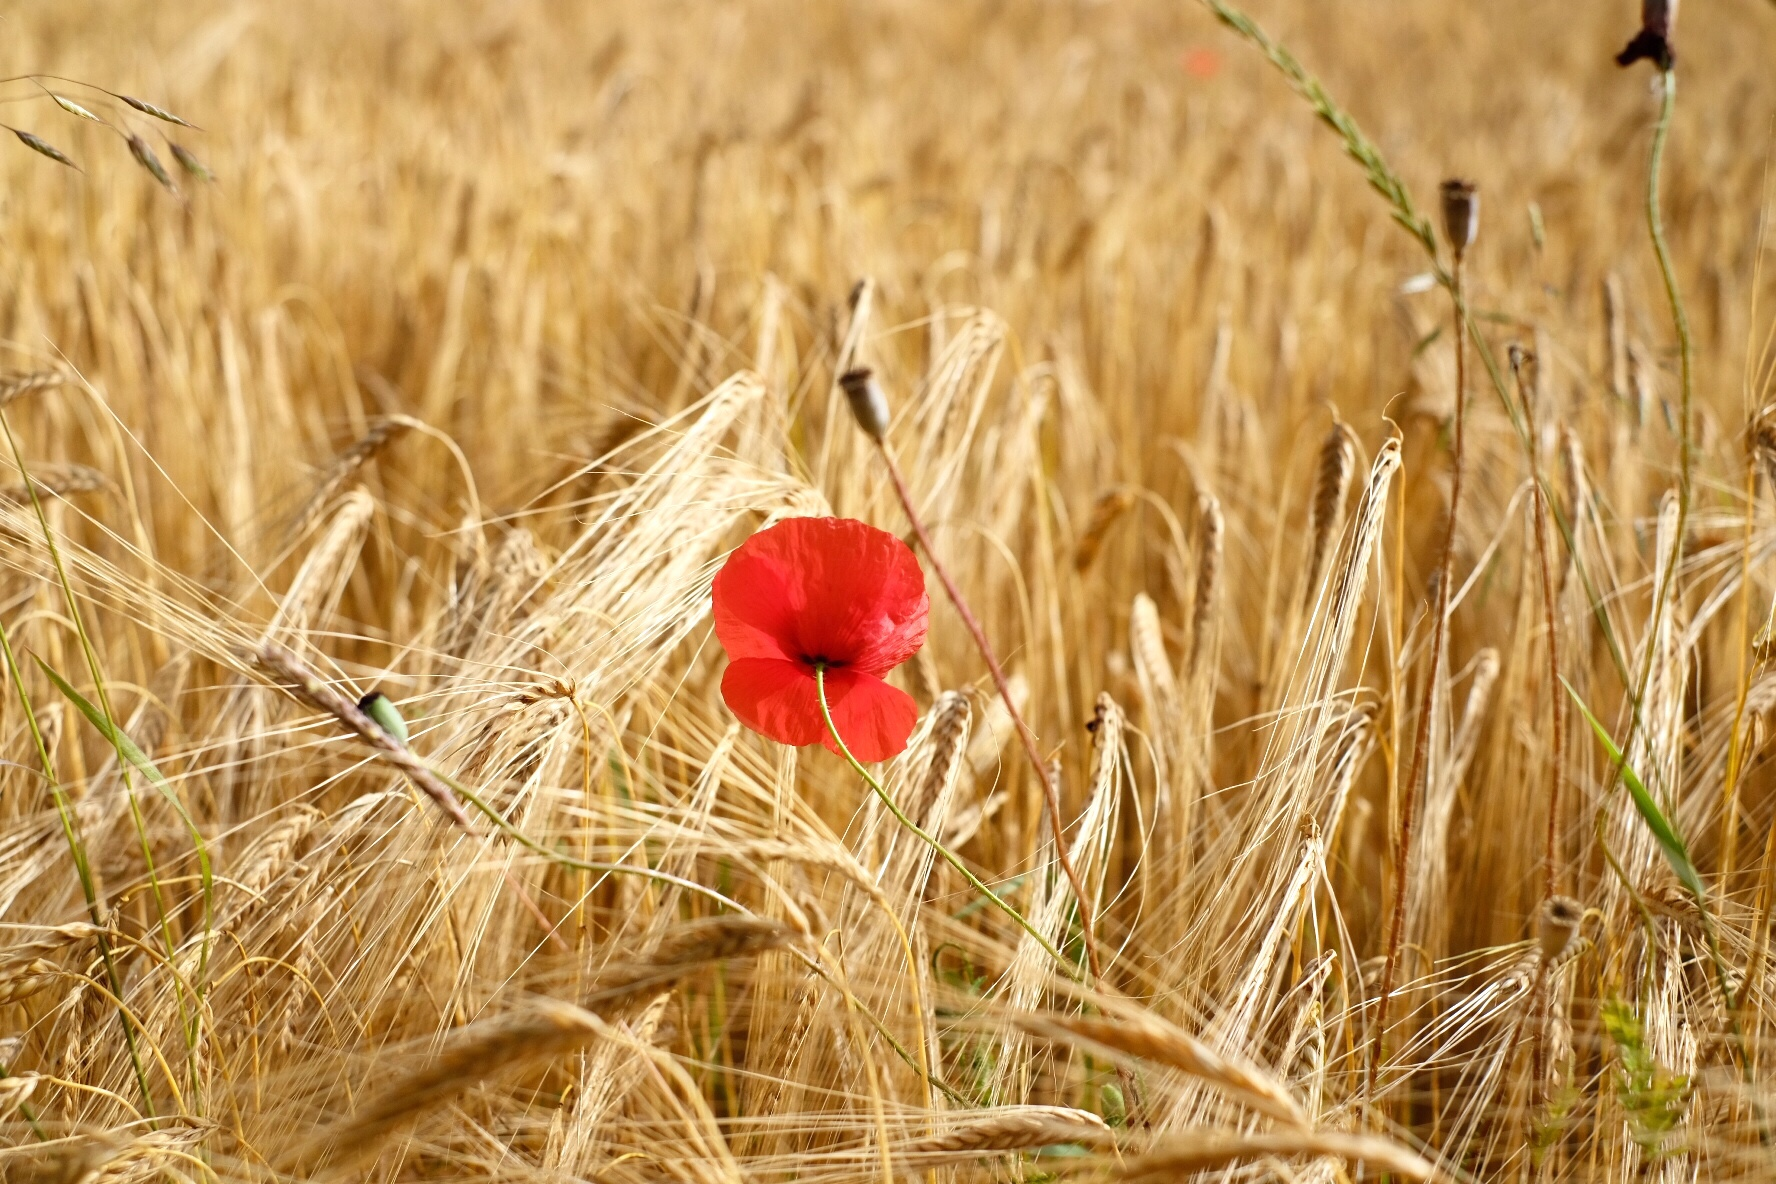 Red poppy in a wheat field, Camino Aragones